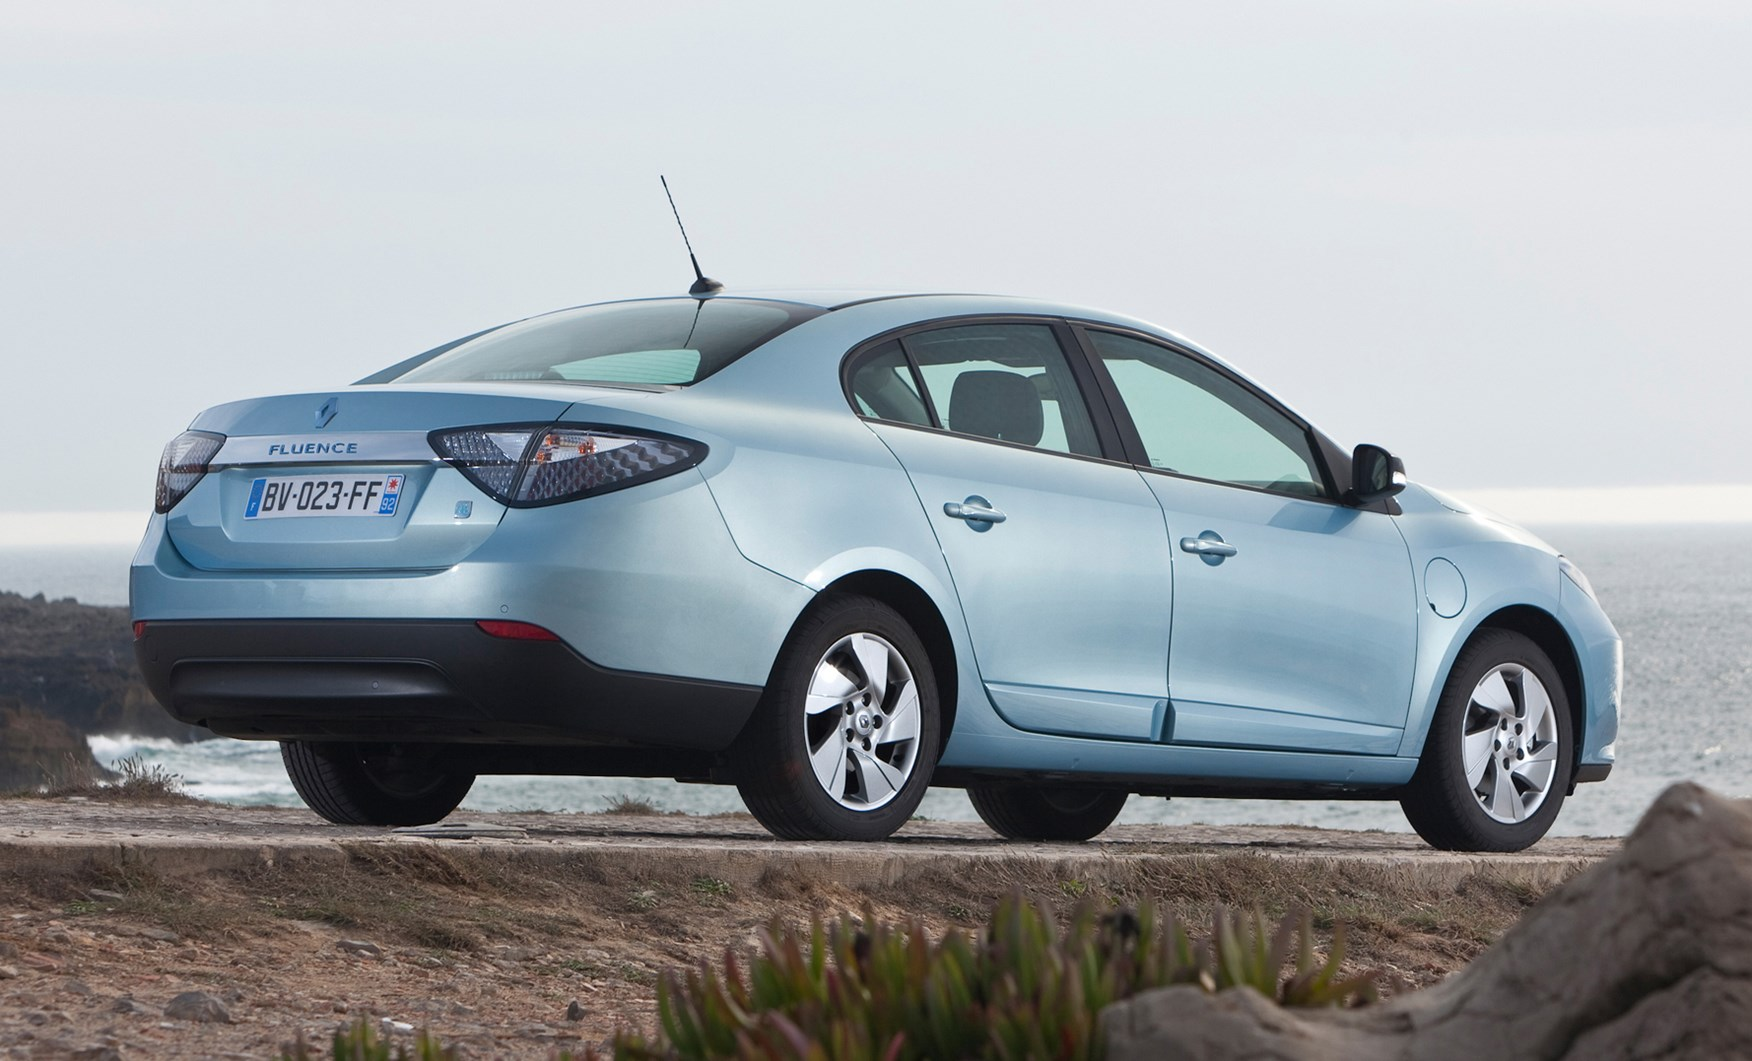 Renault fluence photo - 7